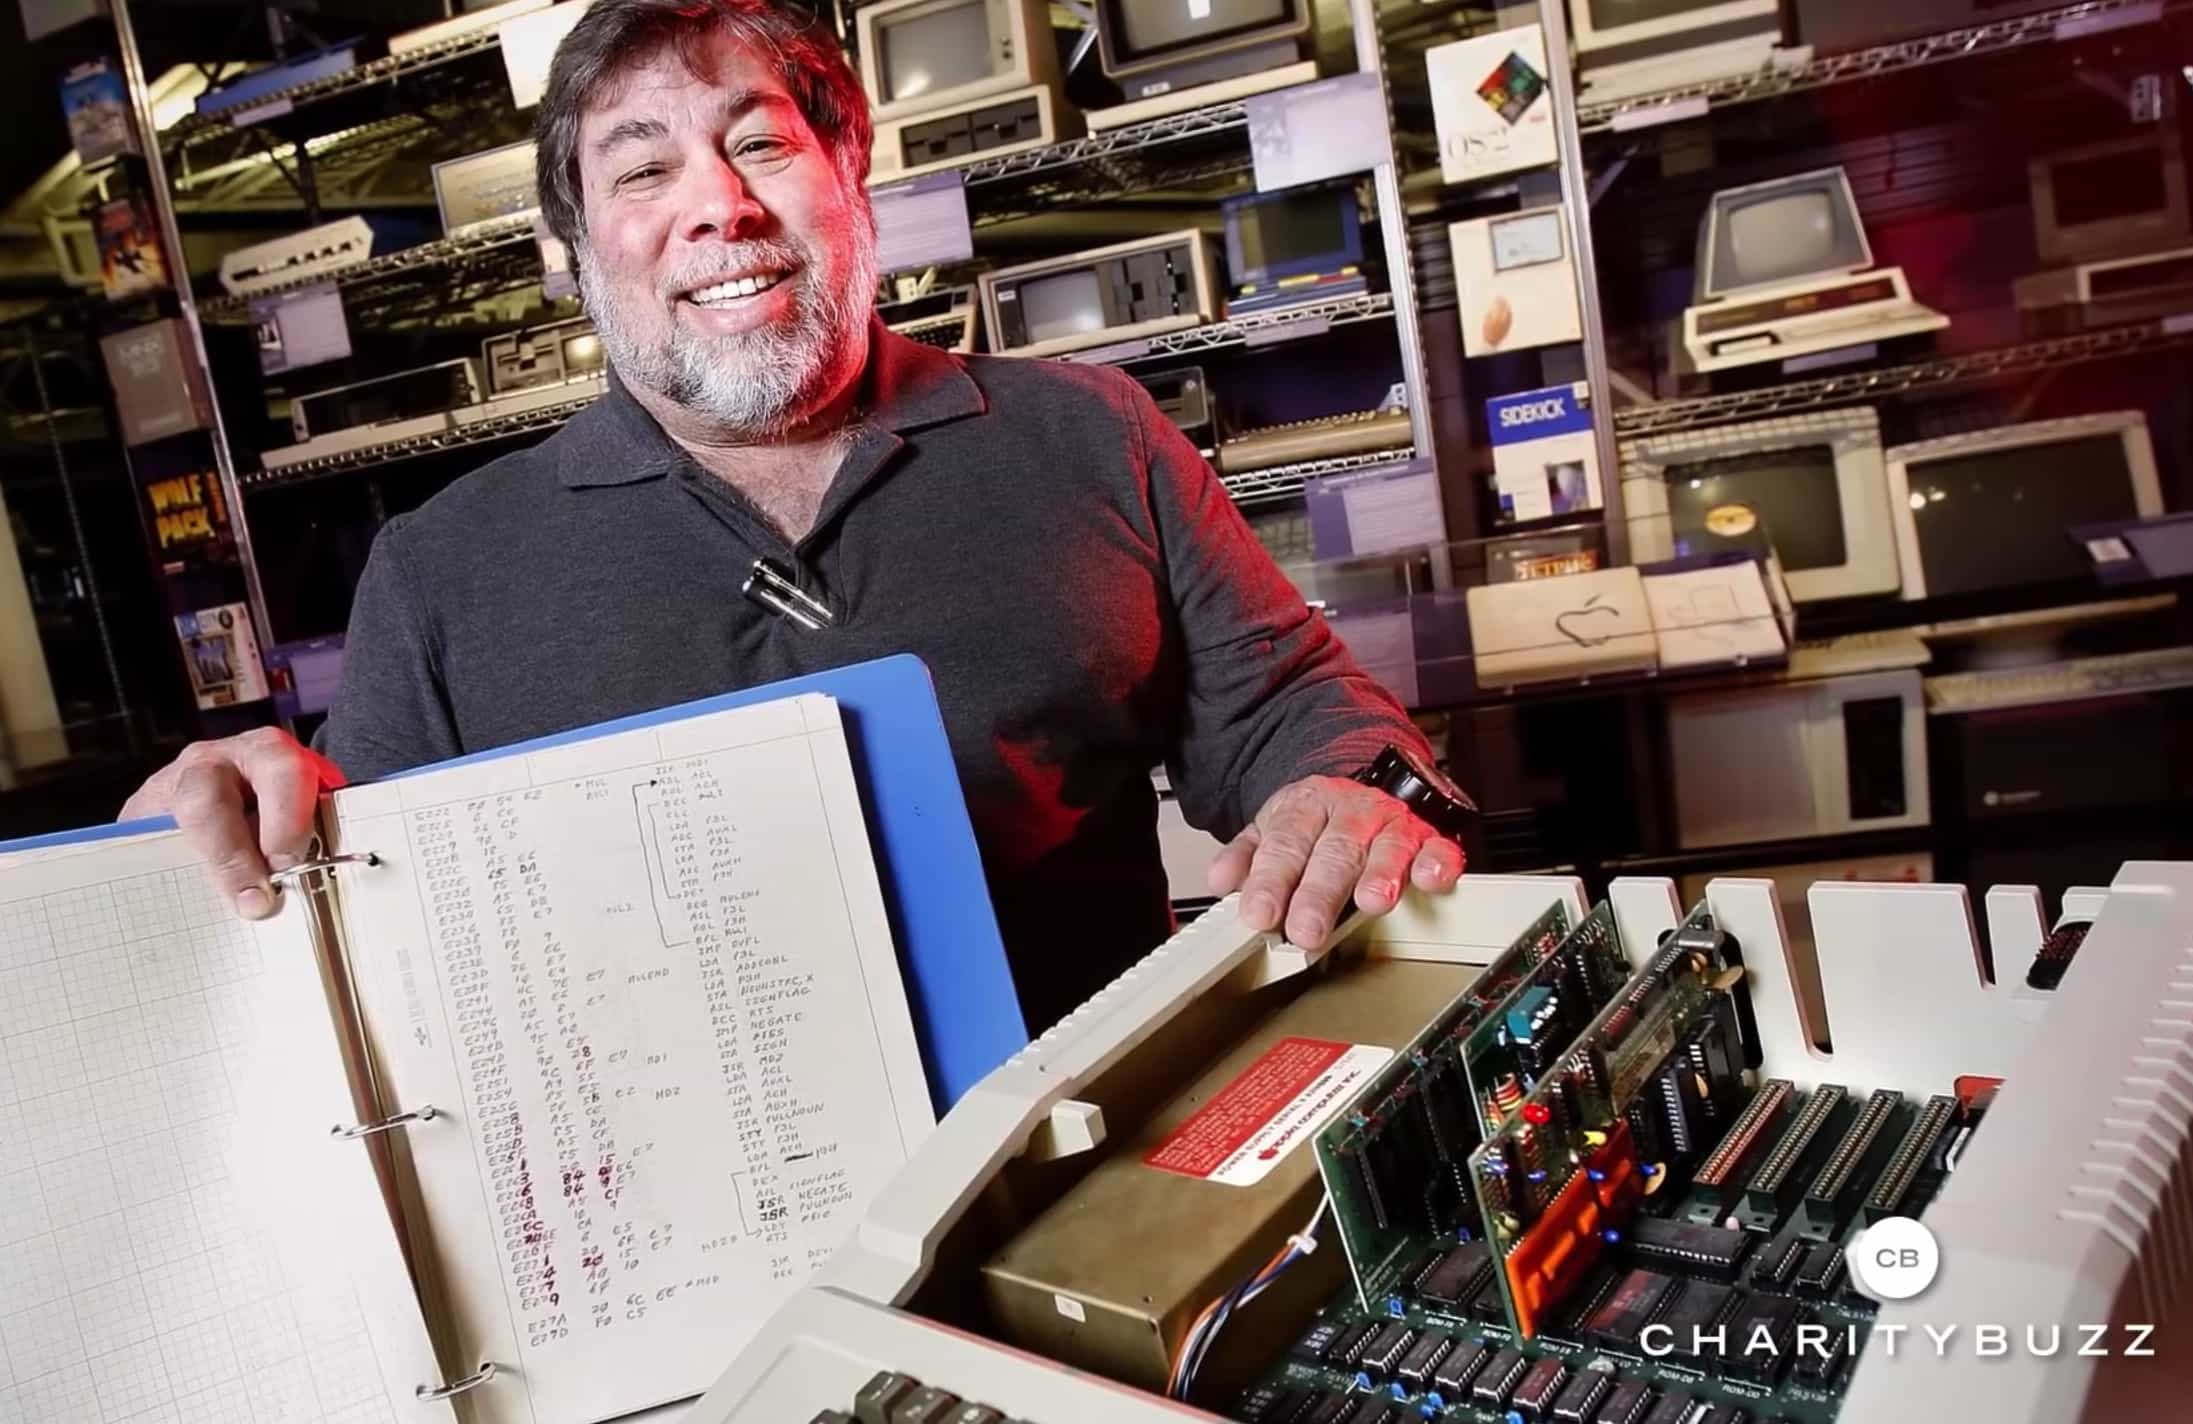 Steve Wozniak shows off a